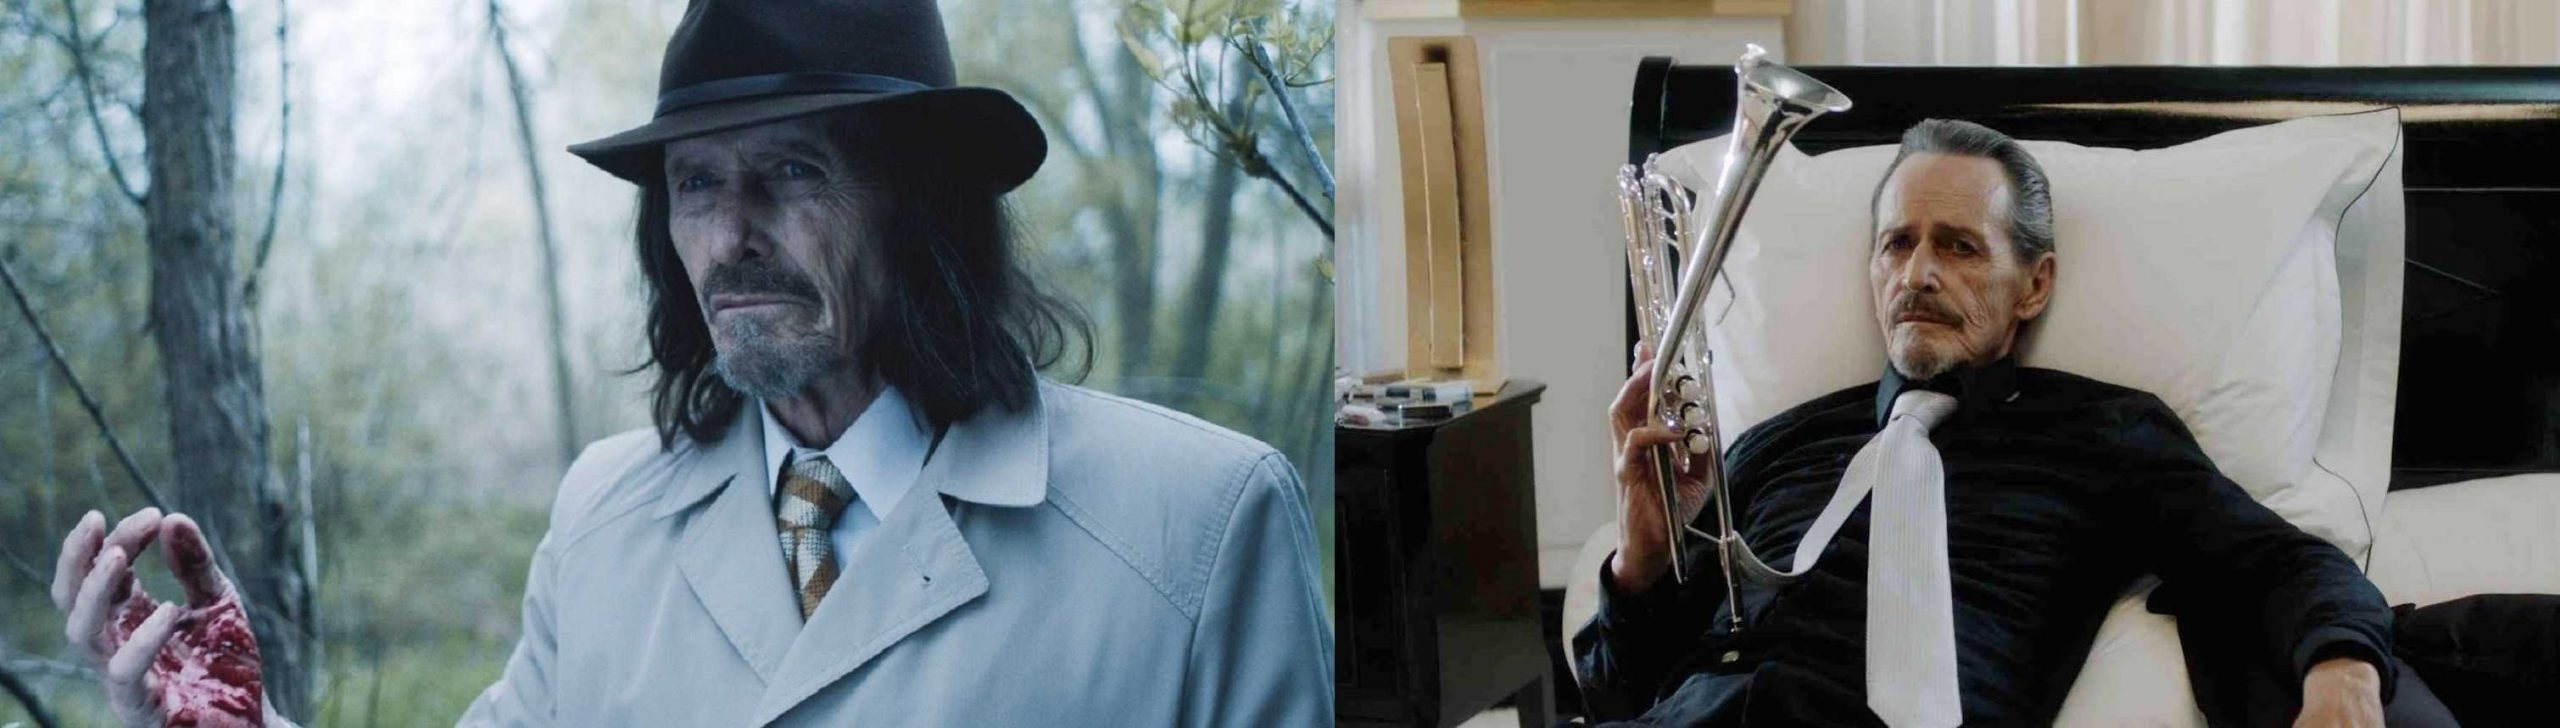 Stephen McHattie as Johnny Deadeyes and the Trumpet Player in Dreamland (2019)